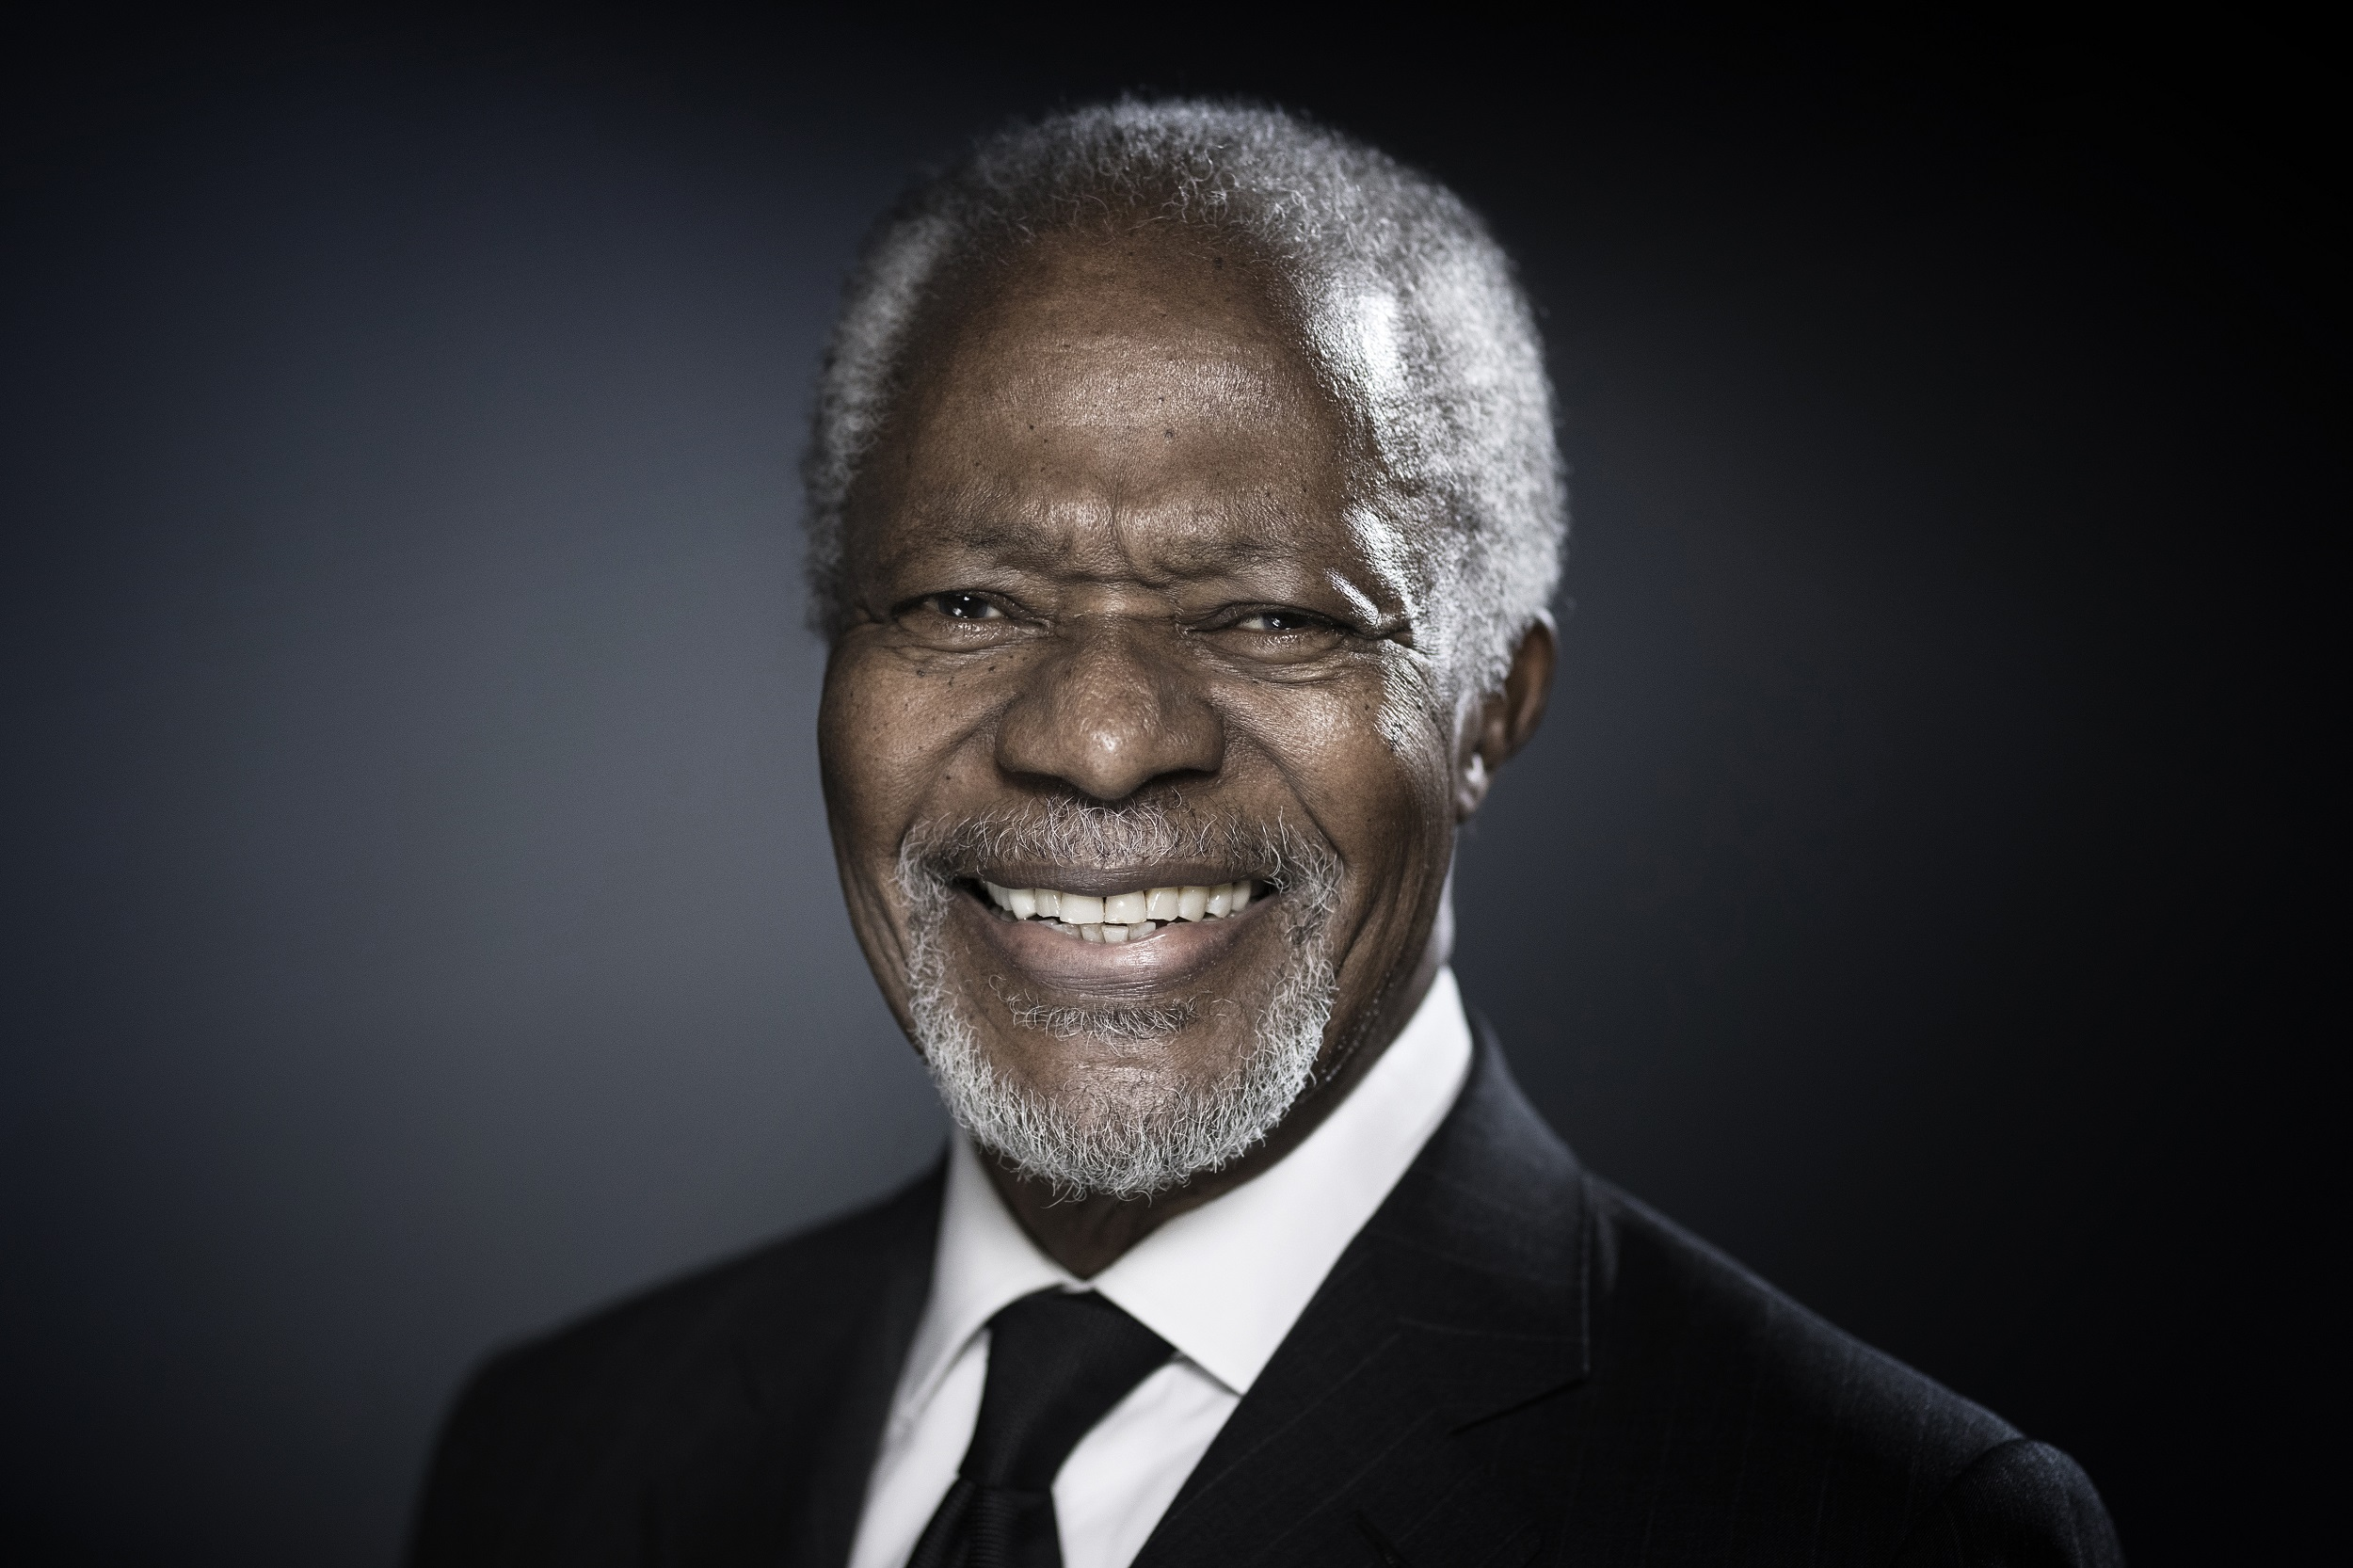 Former UN chief, Nobel laureate Kofi Annan has died.